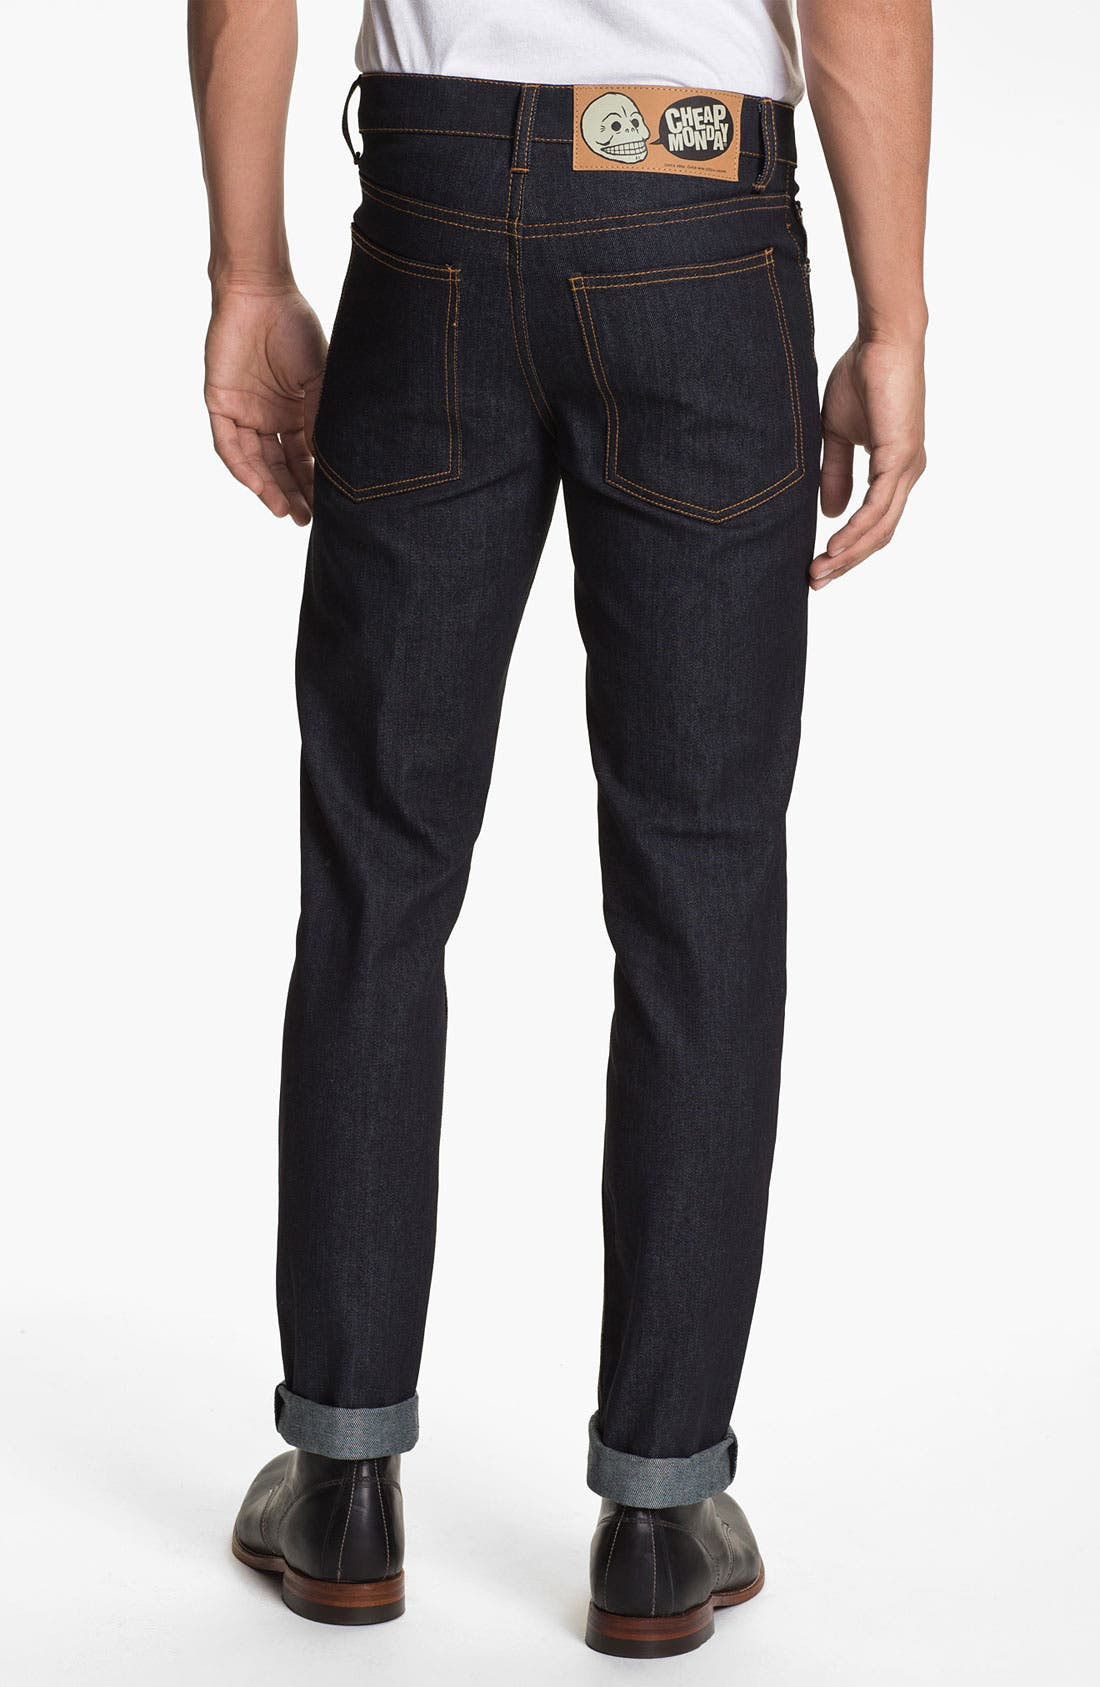 Alternate Image 1 Selected - Cheap Monday Slim Straight Leg Jeans (Original Unwashed)